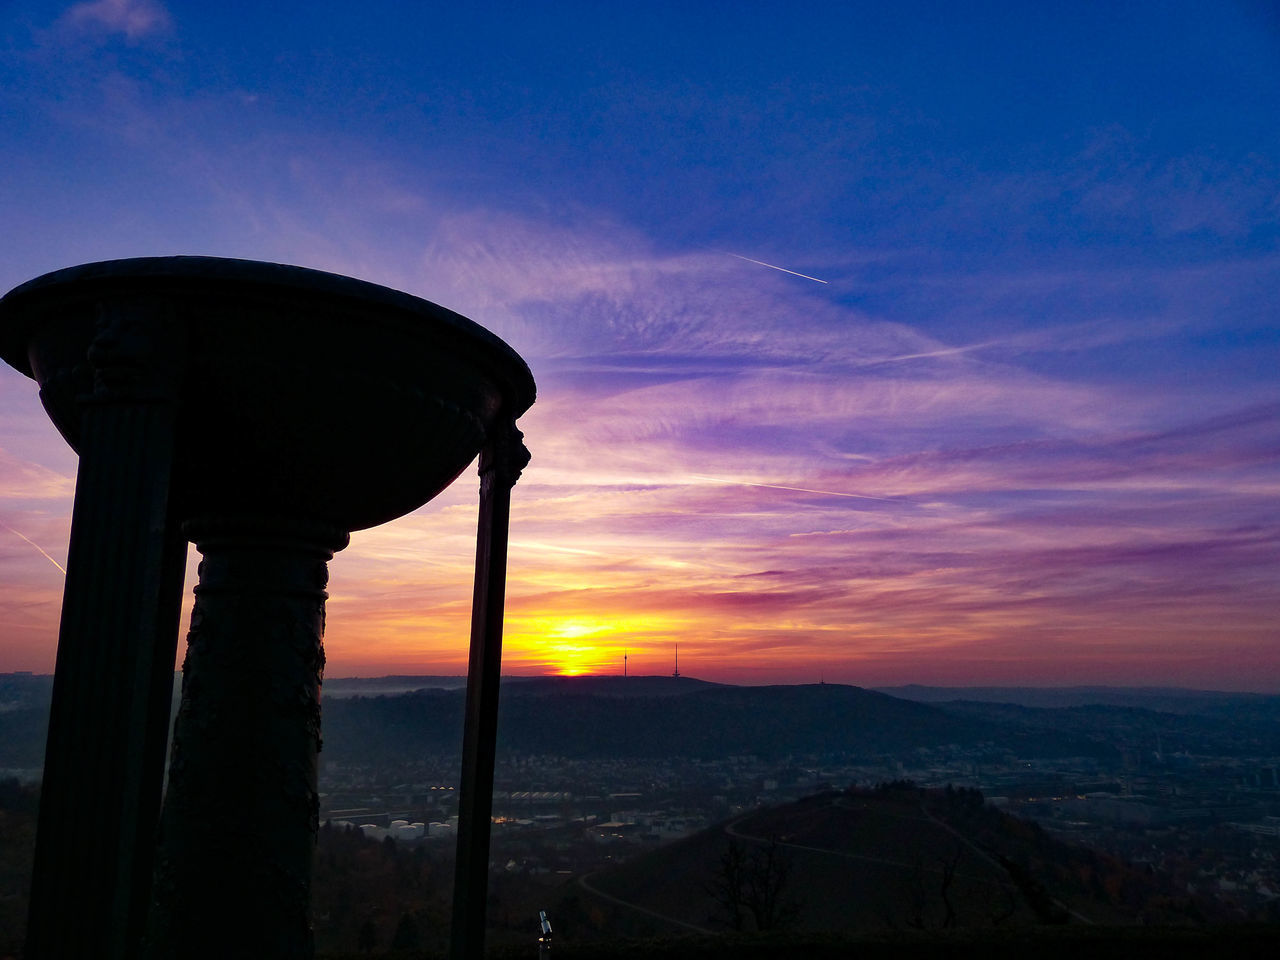 sunset, silhouette, sky, no people, nature, scenics, built structure, architecture, beauty in nature, mountain, outdoors, tranquility, landscape, water tower - storage tank, day